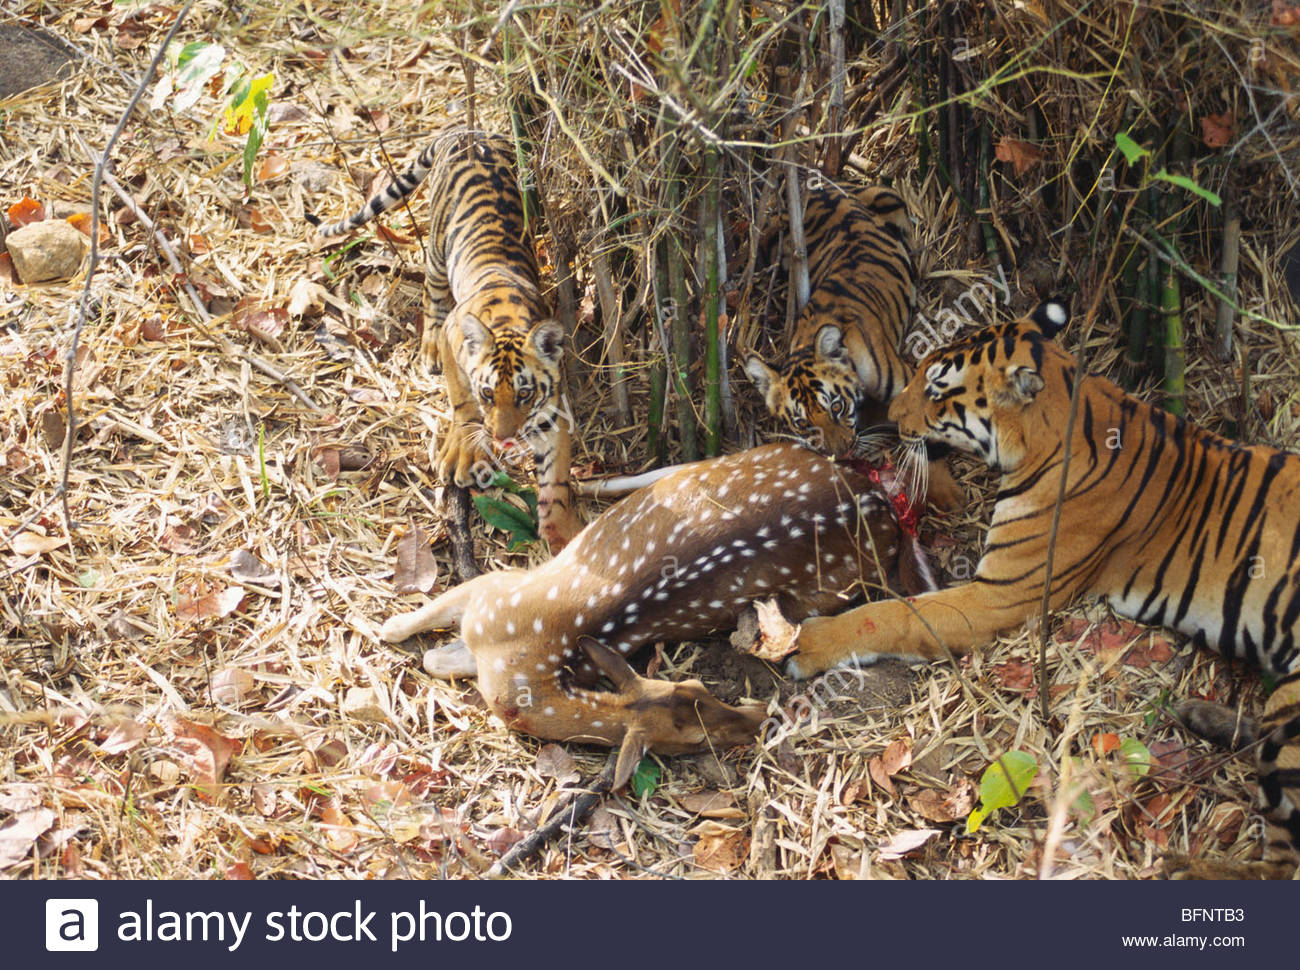 PSL 60690 : Tigress & two cubs panthera tigris busy in eating chital deer india - Stock Image